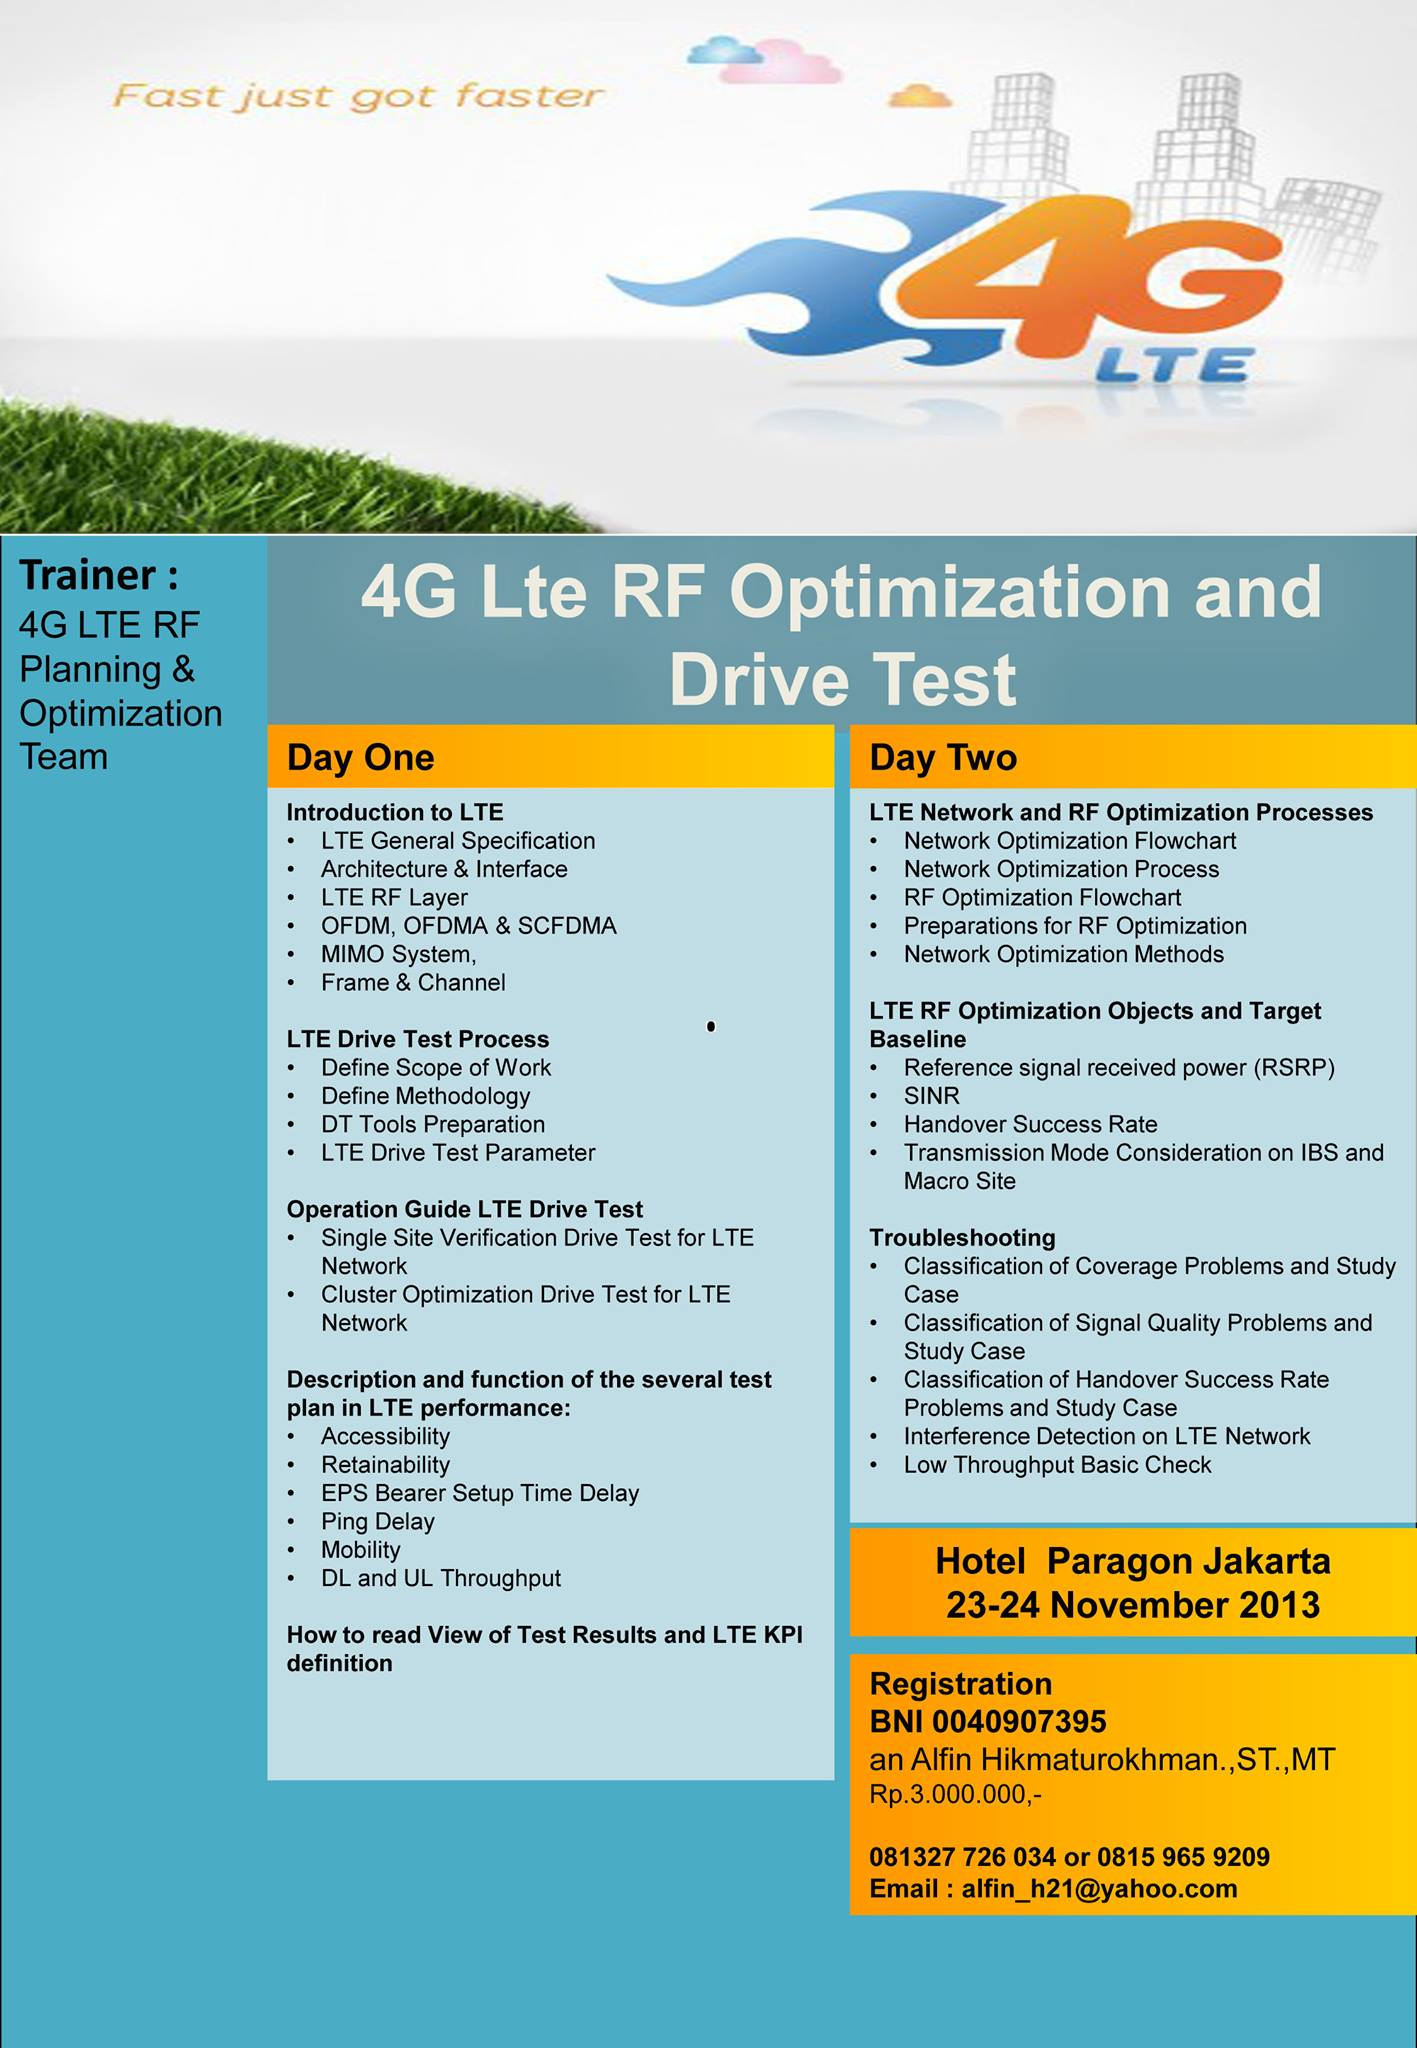 4G LTE RF Optimization and Drive Test